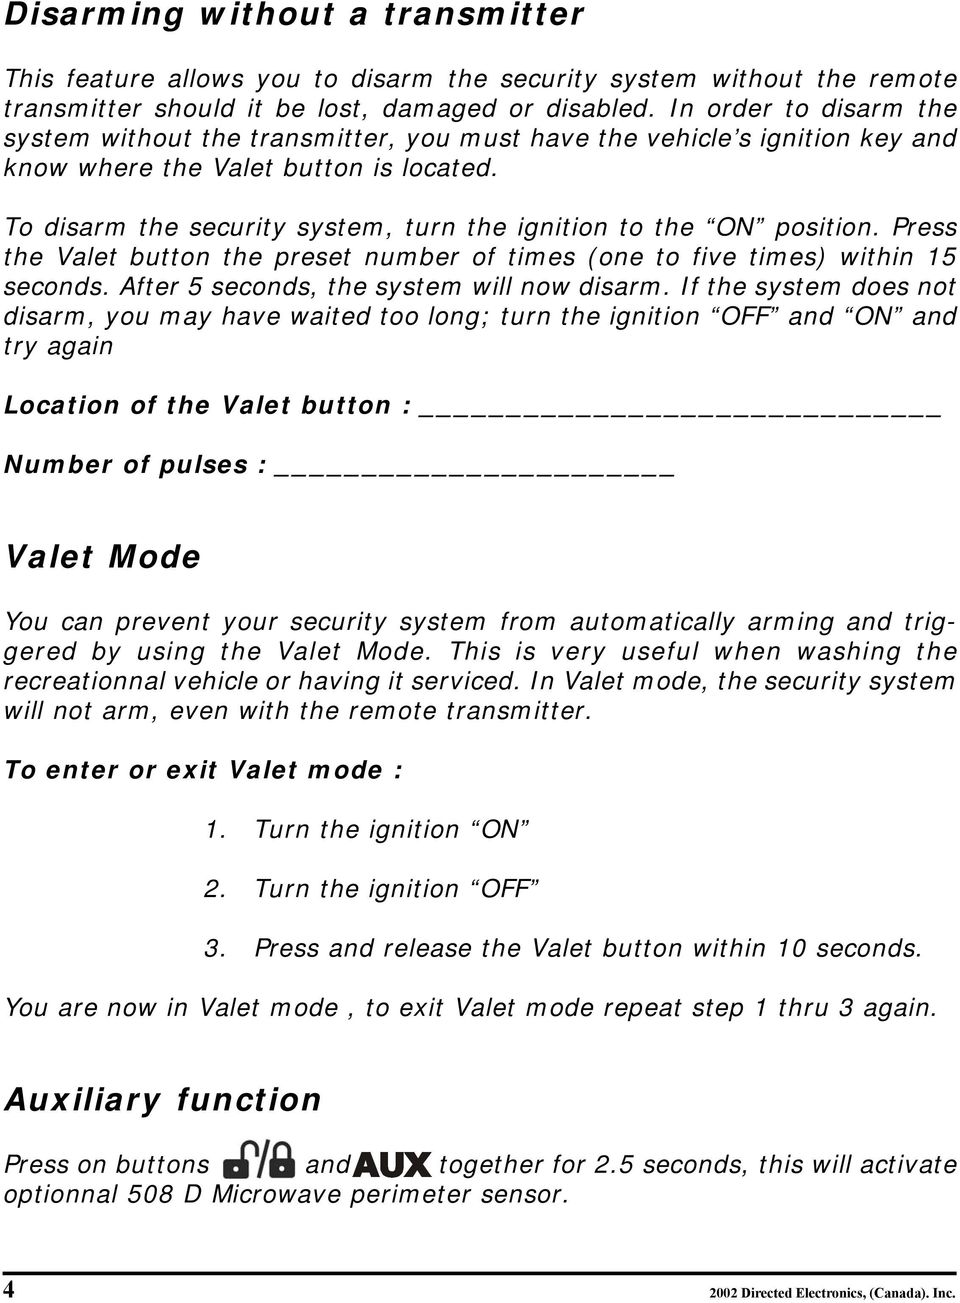 To disarm the security system, turn the ignition to the ON position. Press the Valet button the preset number of times (one to five times) within 15 seconds.